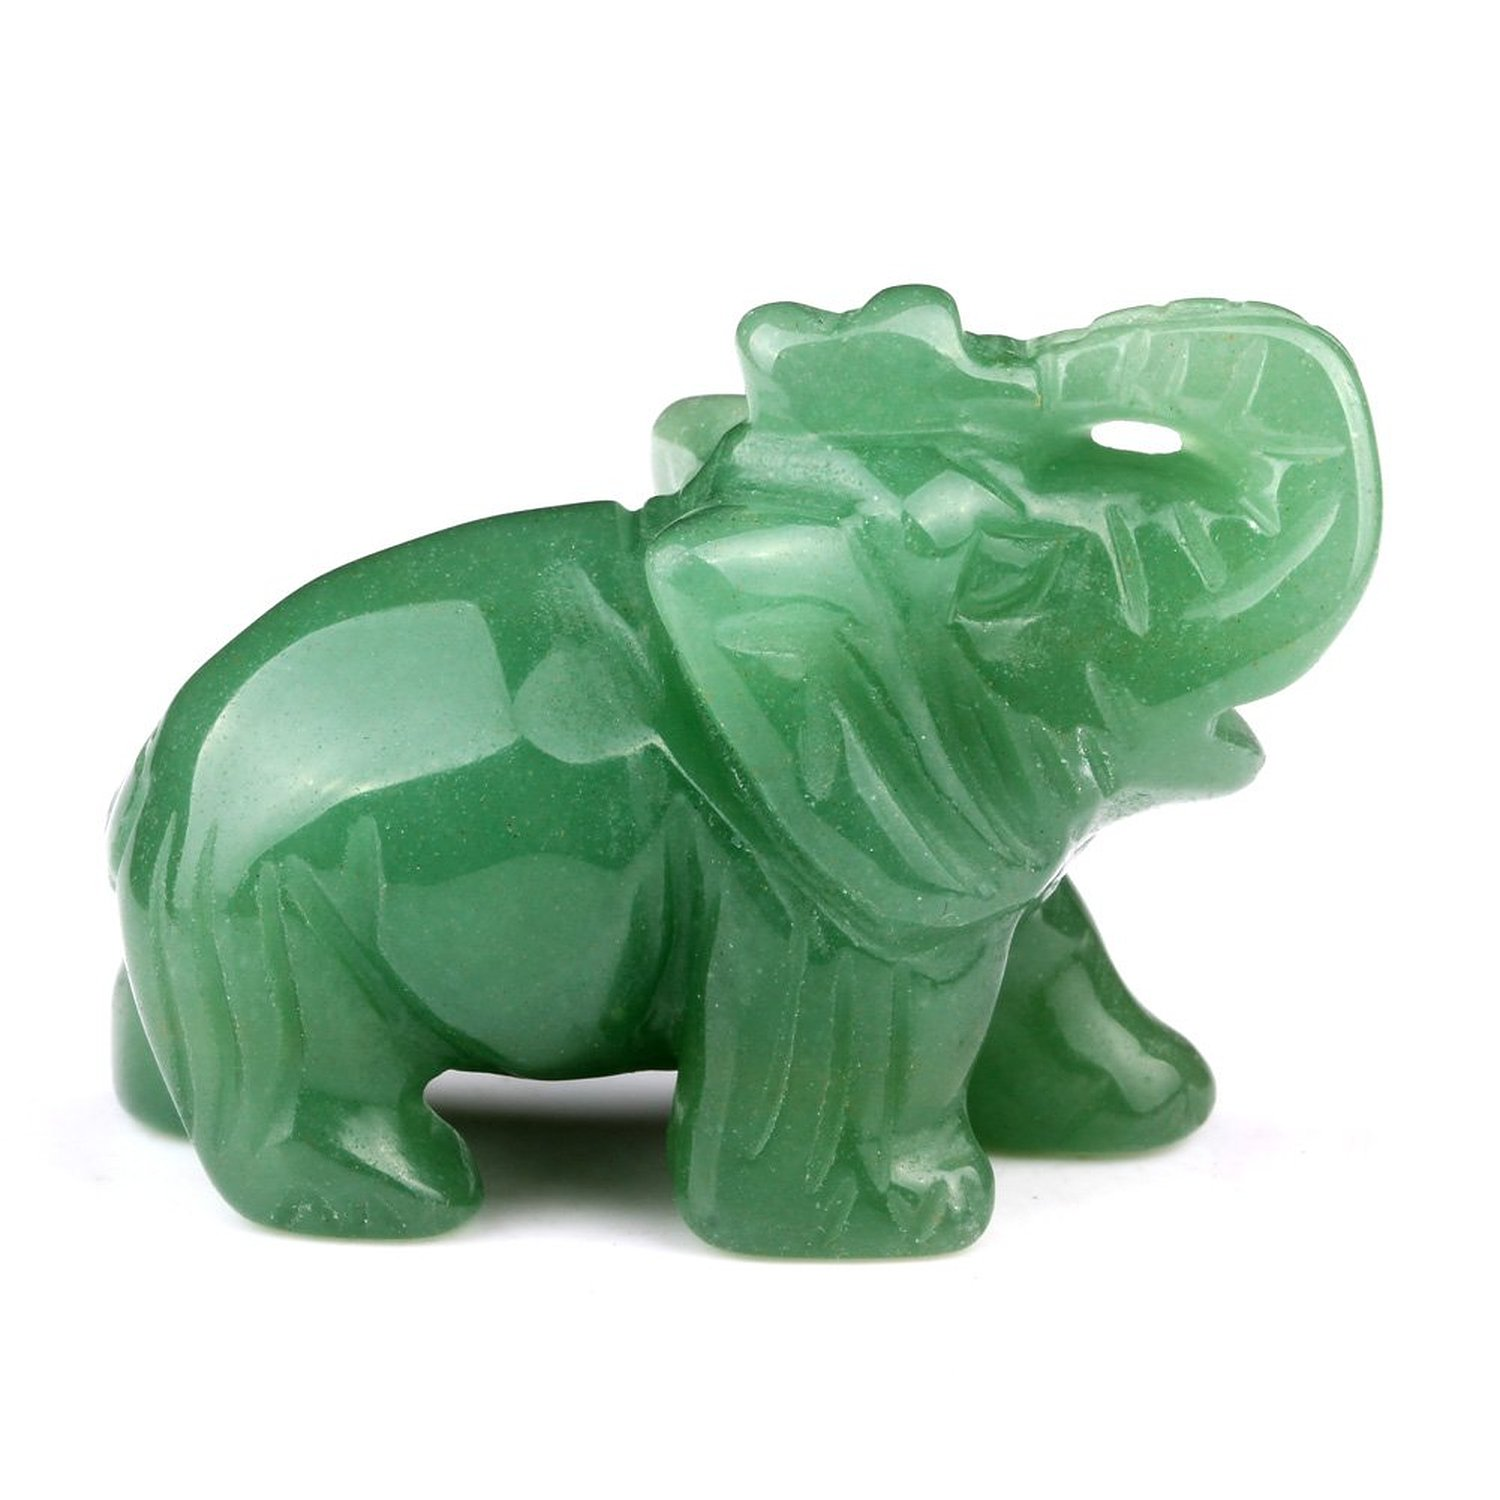 Cheap elephant good luck find elephant good luck deals on line at amulet green quartz elephant gemstone carving good luck powers pocket or desk totem good luck charm biocorpaavc